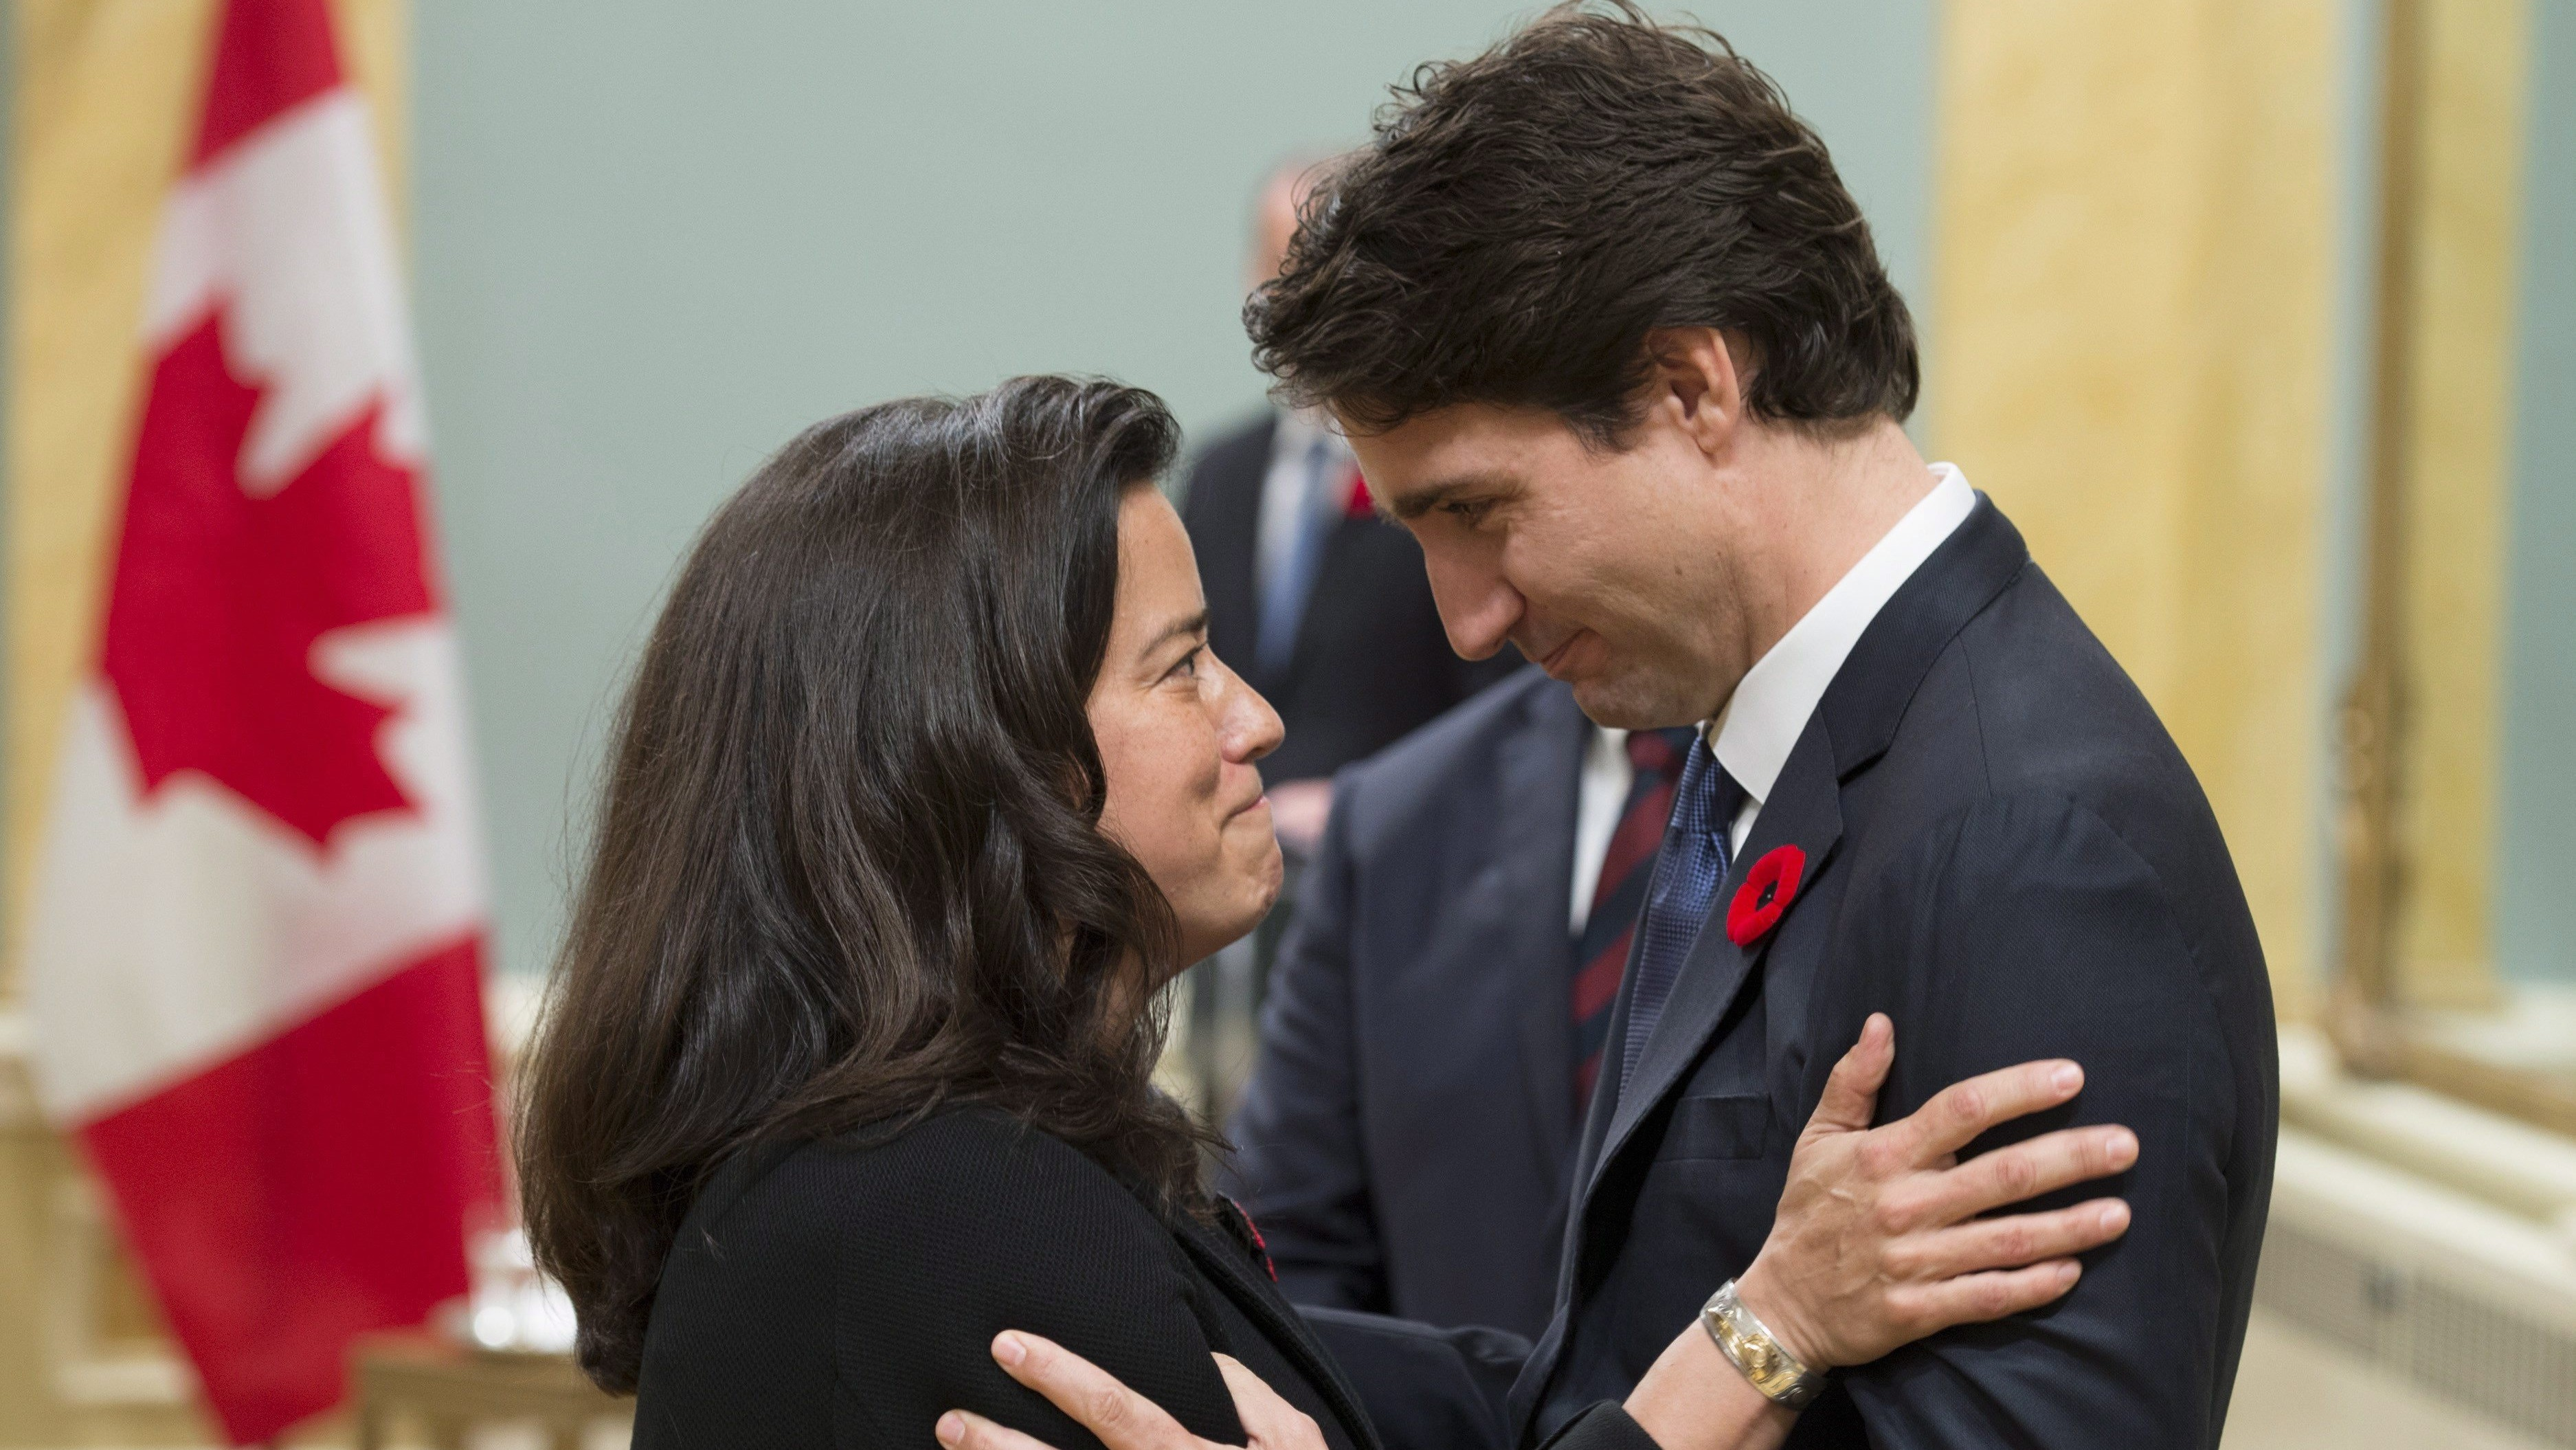 This Is a Moment in Canadian Politics Indigenous People Have Been Waiting For